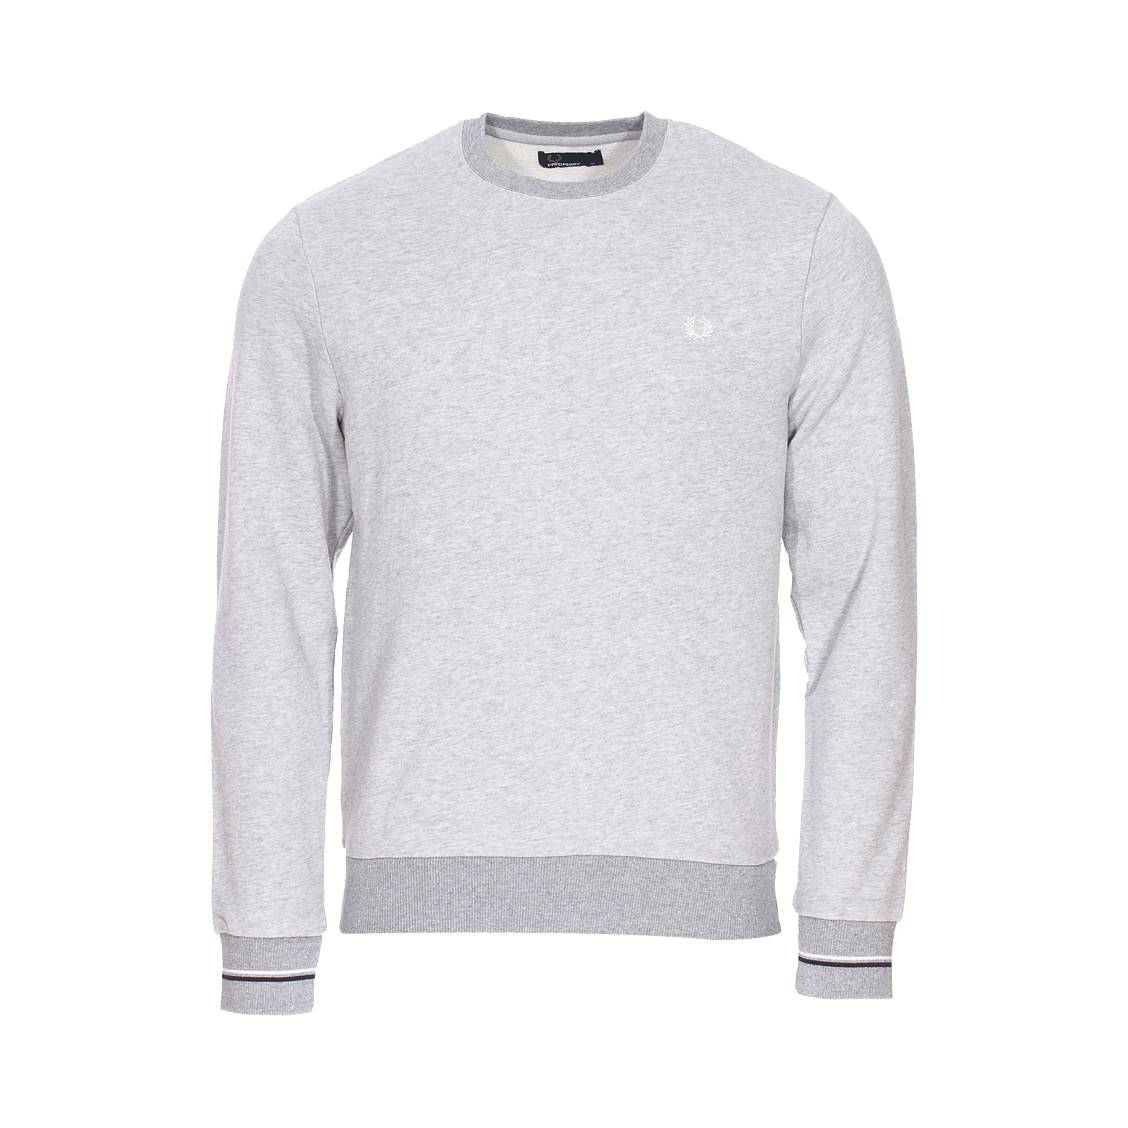 11b6eeb0a4db9 73595-fred-perry-e18-sweat-fpm2599-250-vintage-marl-grey-sweat-col -rond-fred-perry-en-coton-gris-chine-1 1128x1128.jpg